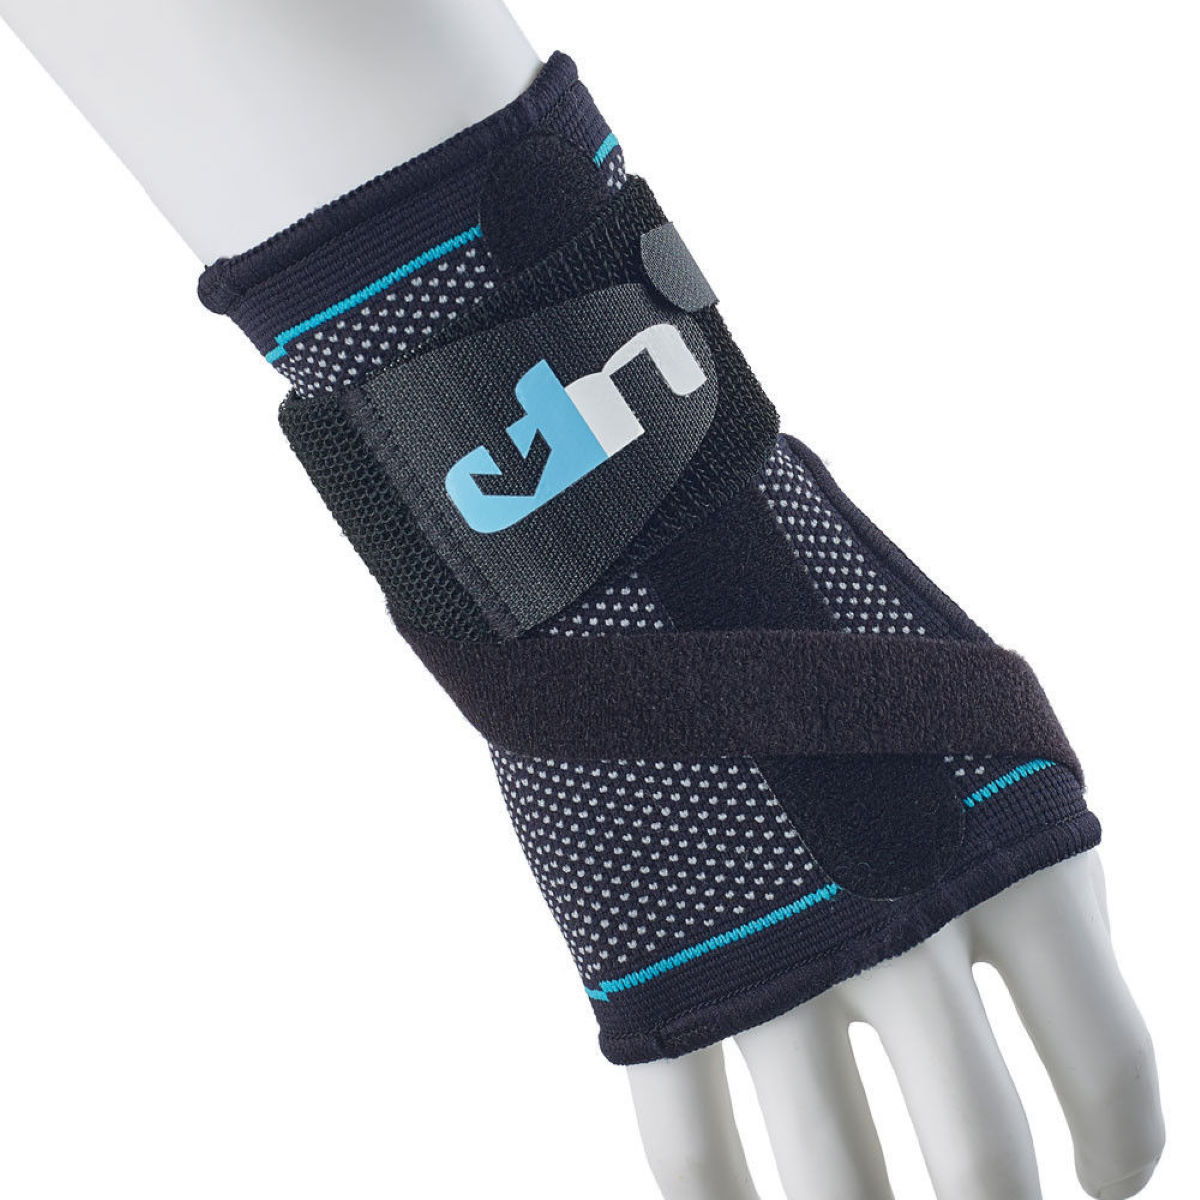 Ultimate Performance Ultimate Performance Advanced Compression Wrist Support With Splint   Arm Supports